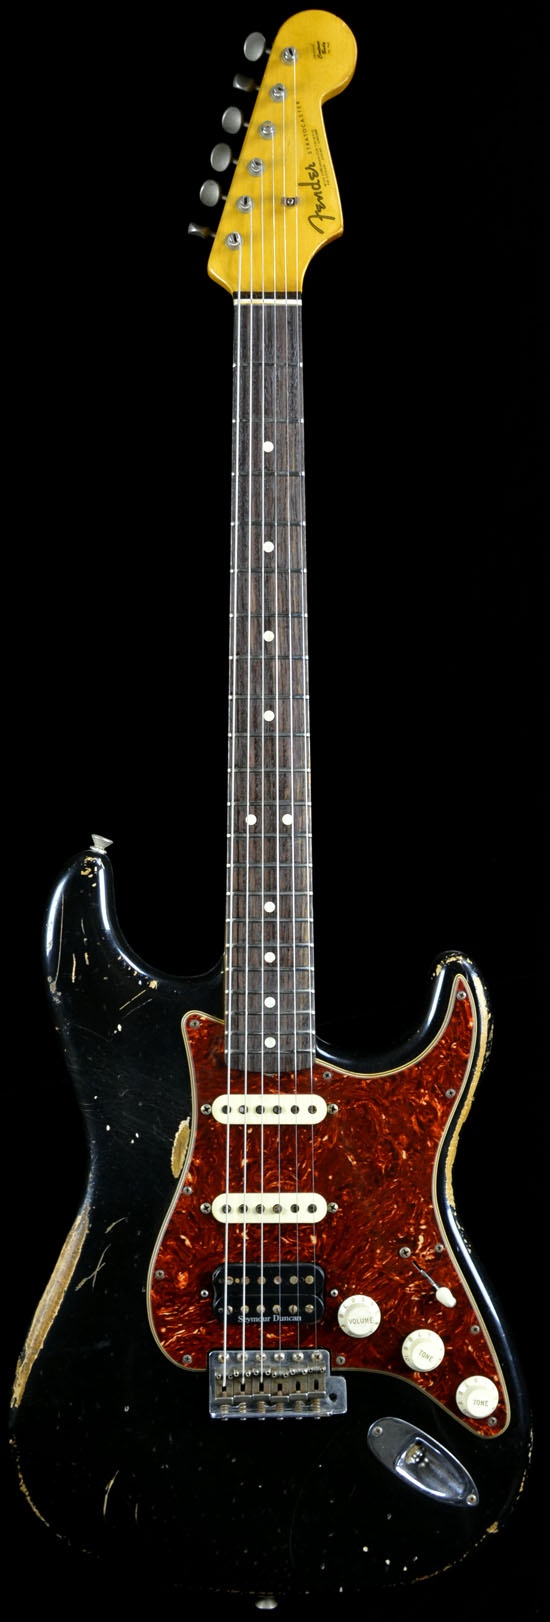 100 Best Guitars And Amps Images On Pinterest Electric Fender Roland Ready Strat Wiring Diagram Wild West Custom Shop Limited Edition Heavy Relic Black Hss